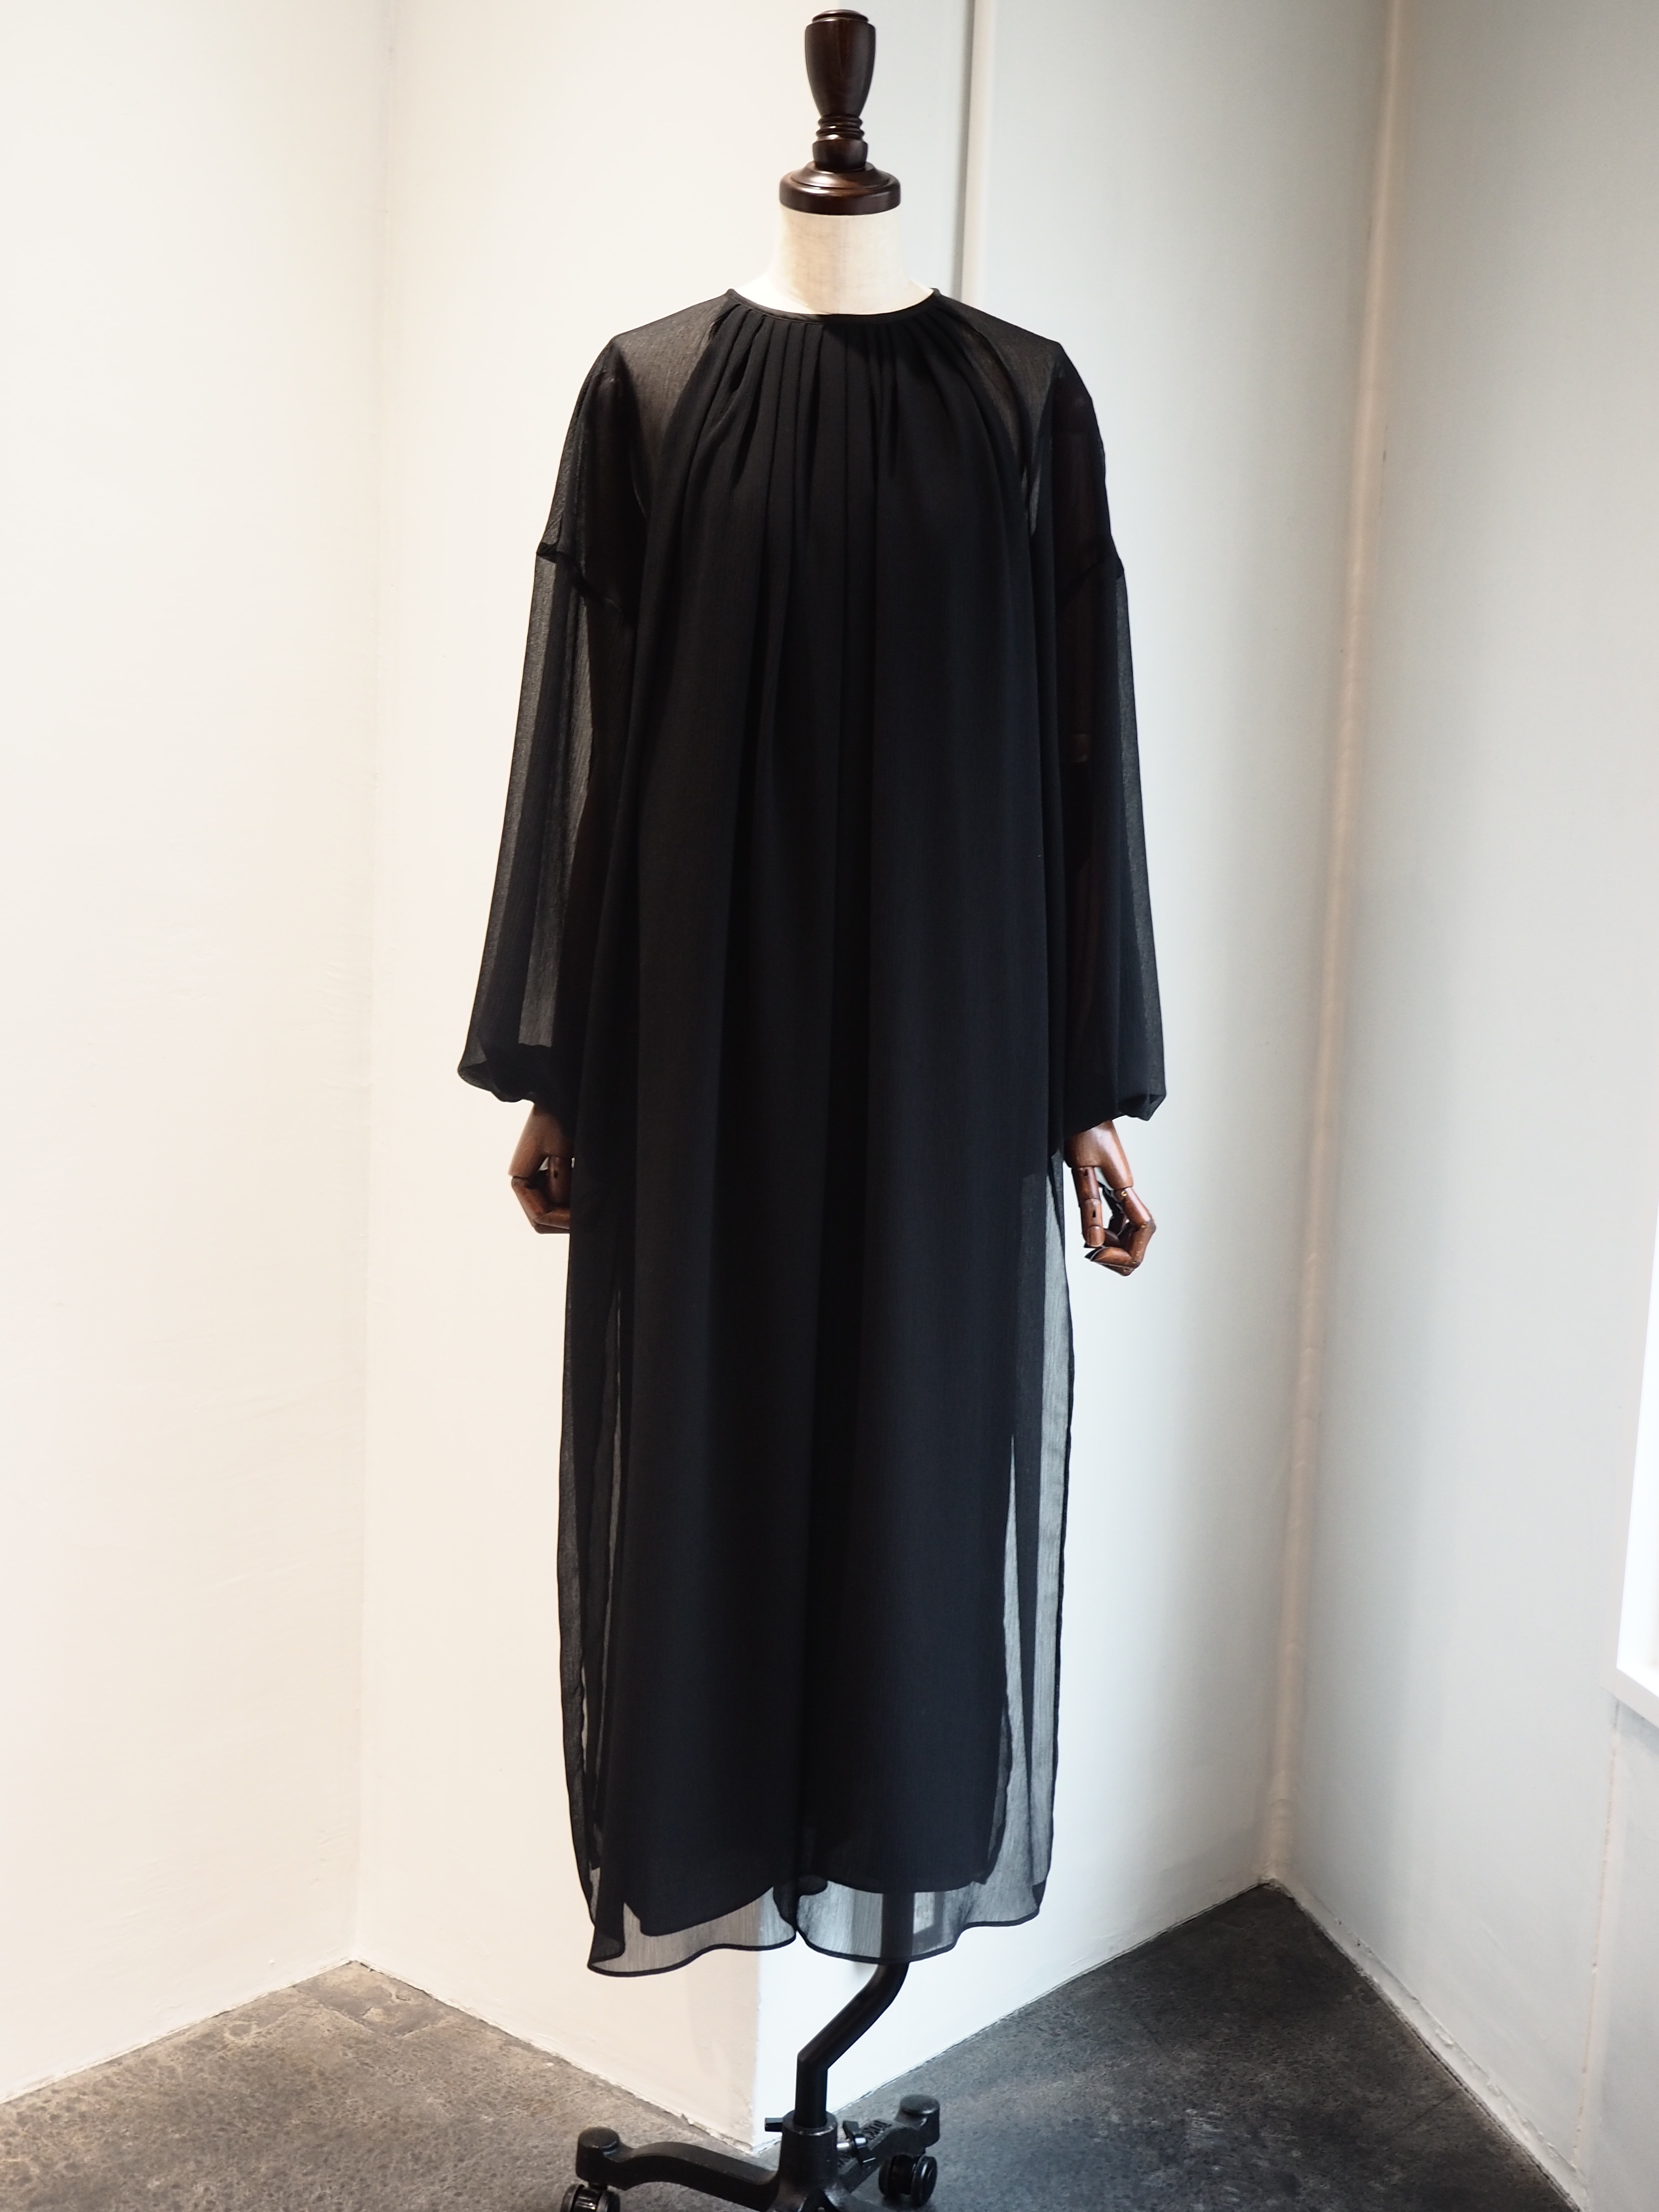 【ELIN】SHEER LAYERED DRESS